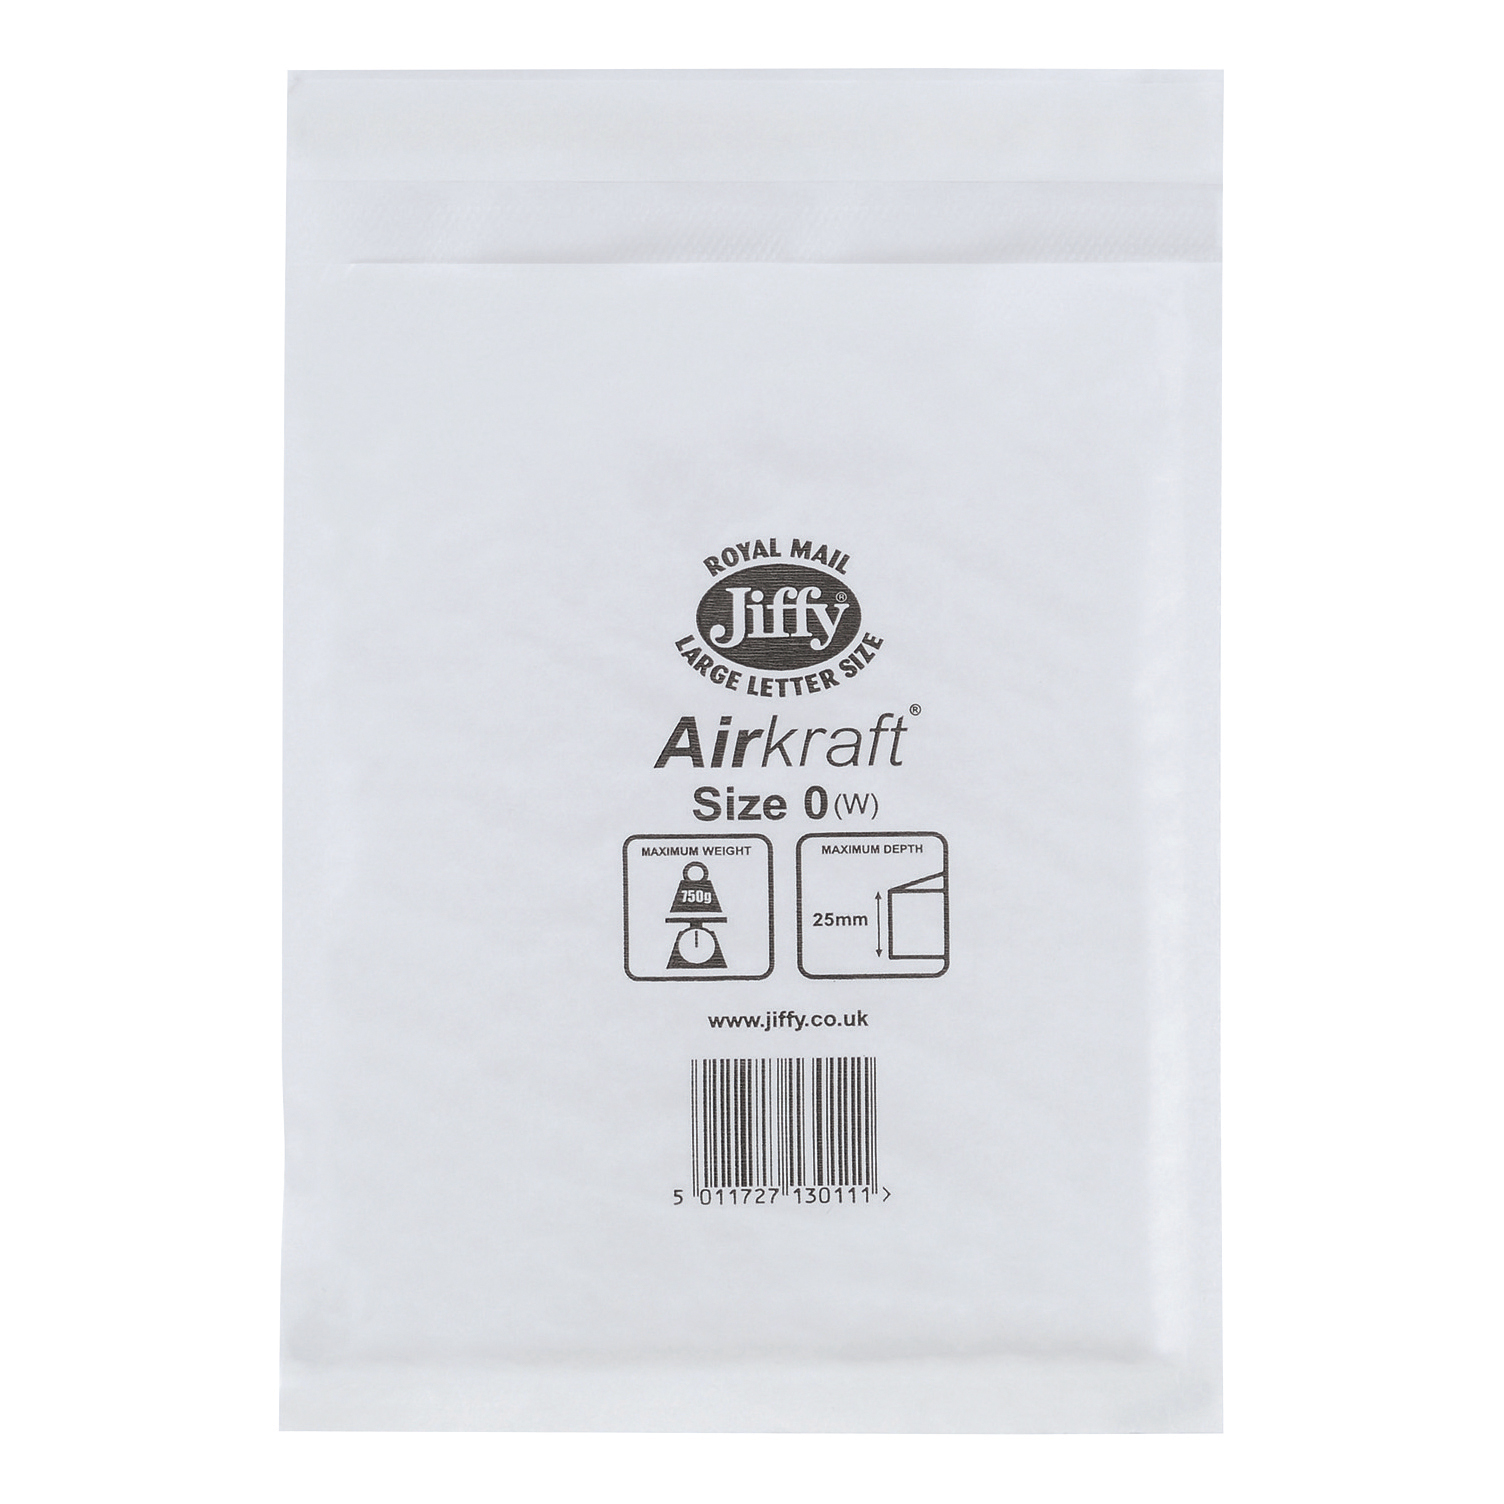 Jiffy Airkraft Postal Bags Bubble-lined Peel and Seal Size 0 White 140x195mm Ref JL-0 Pack 100